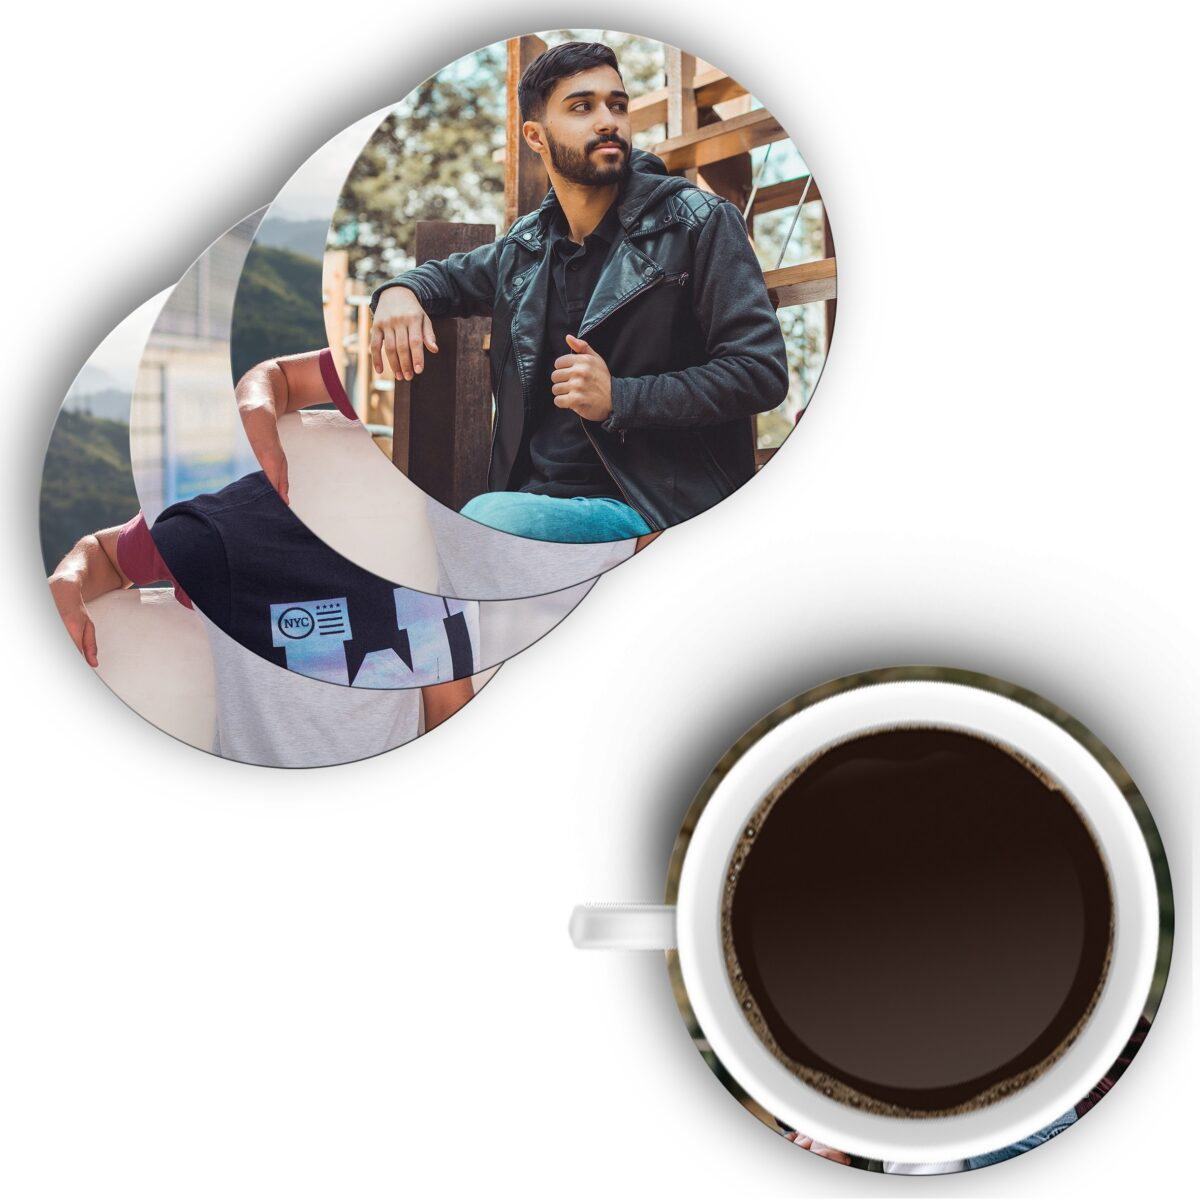 Round Shape Single Sides Shape Both Sides Printable MDF Coaster (Set of 4) (Different Photos Print in Different Coaster)